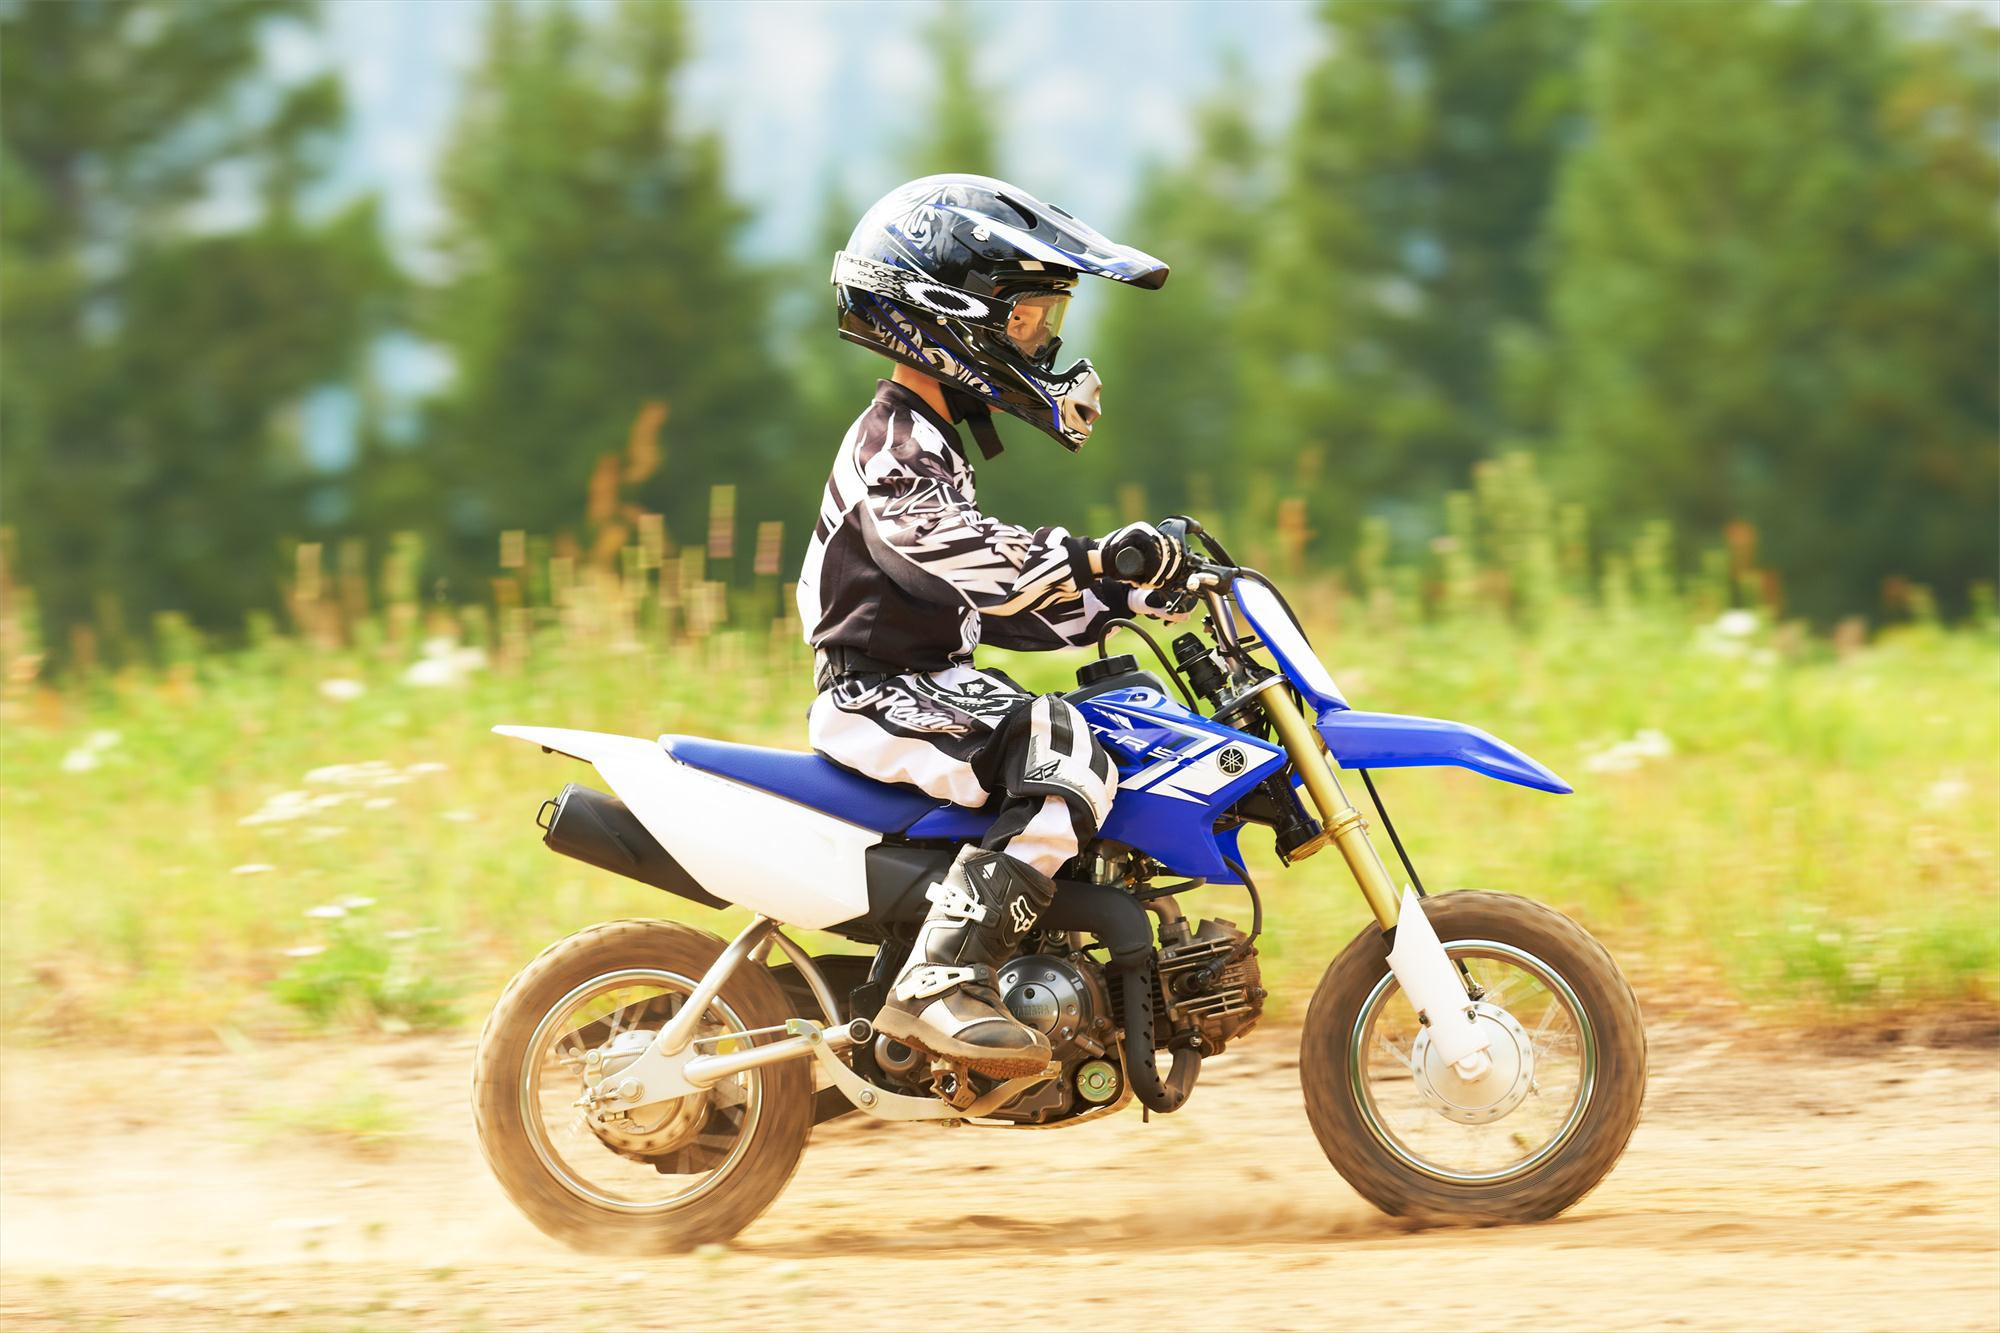 2013 Yamaha PW50, the Small Bike for Young Champs